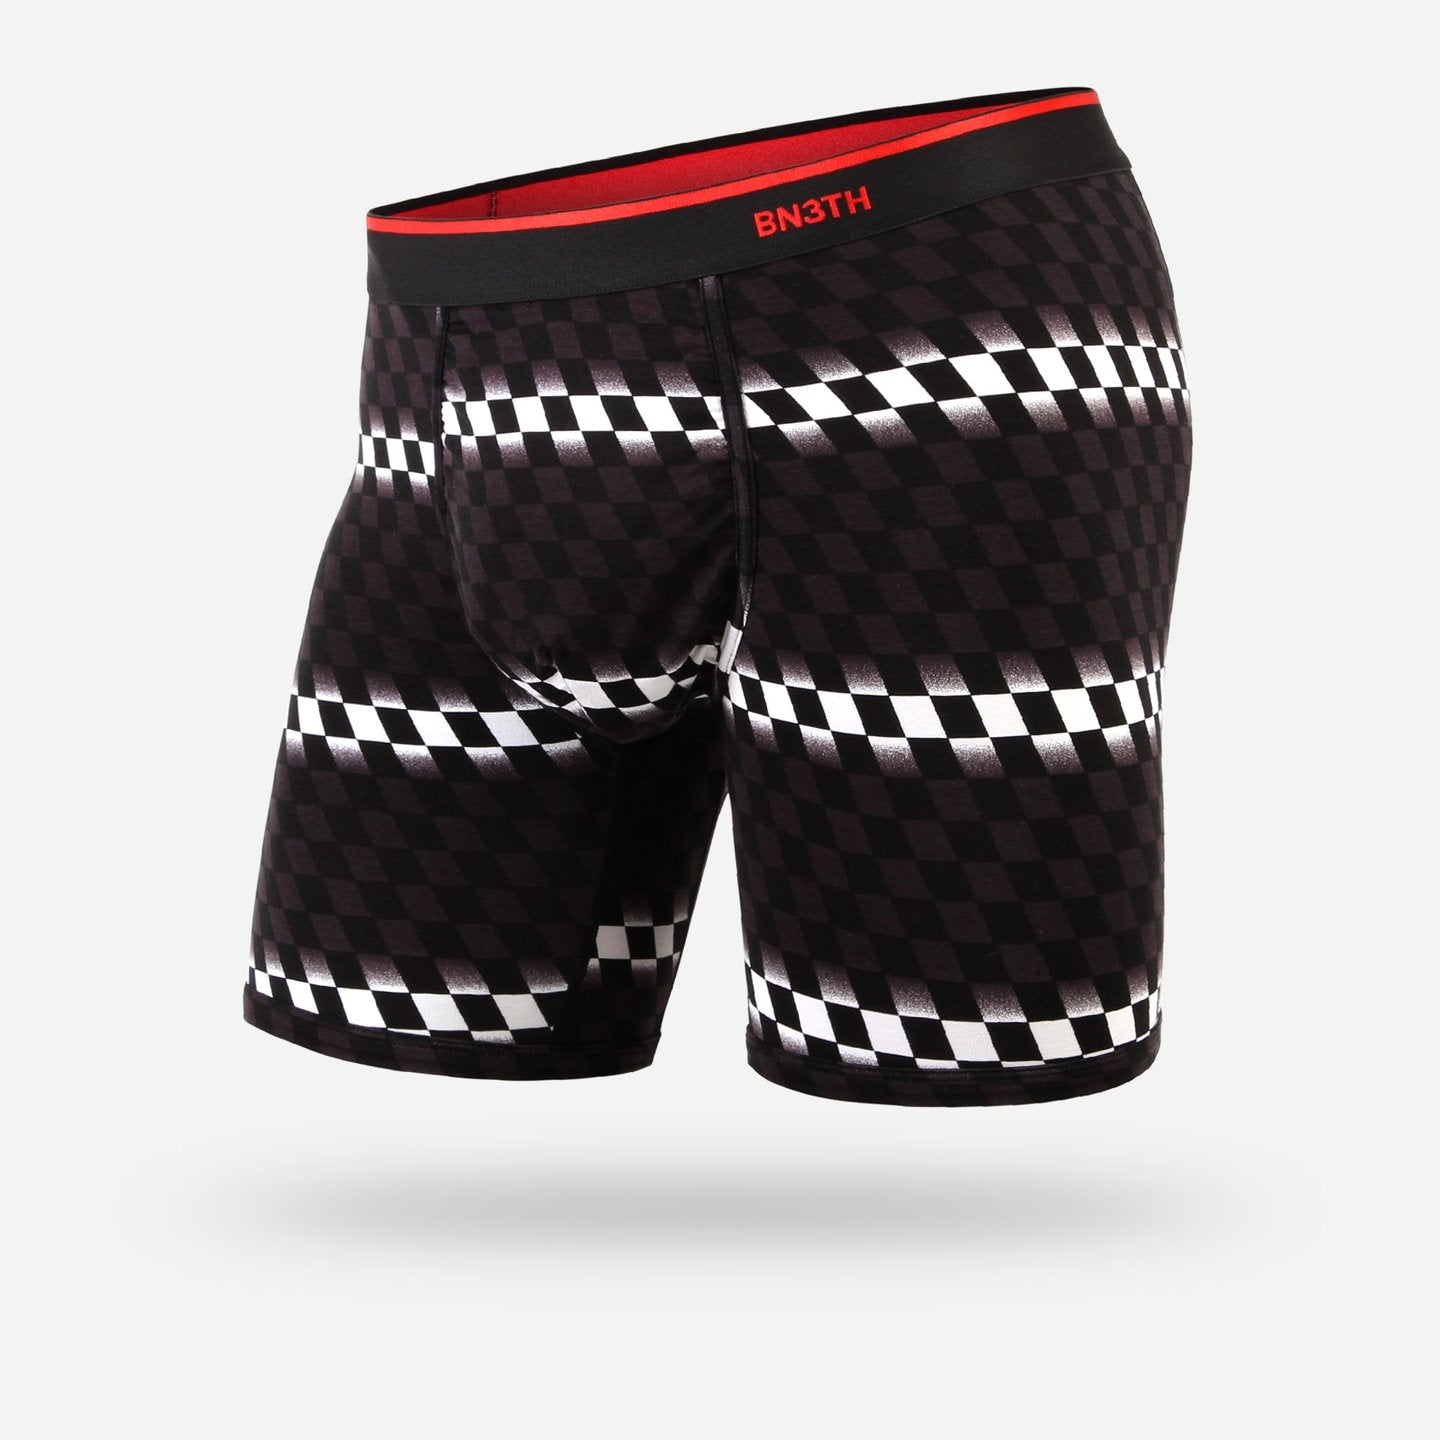 BN3TH Classic Boxer Brief- Radical Black